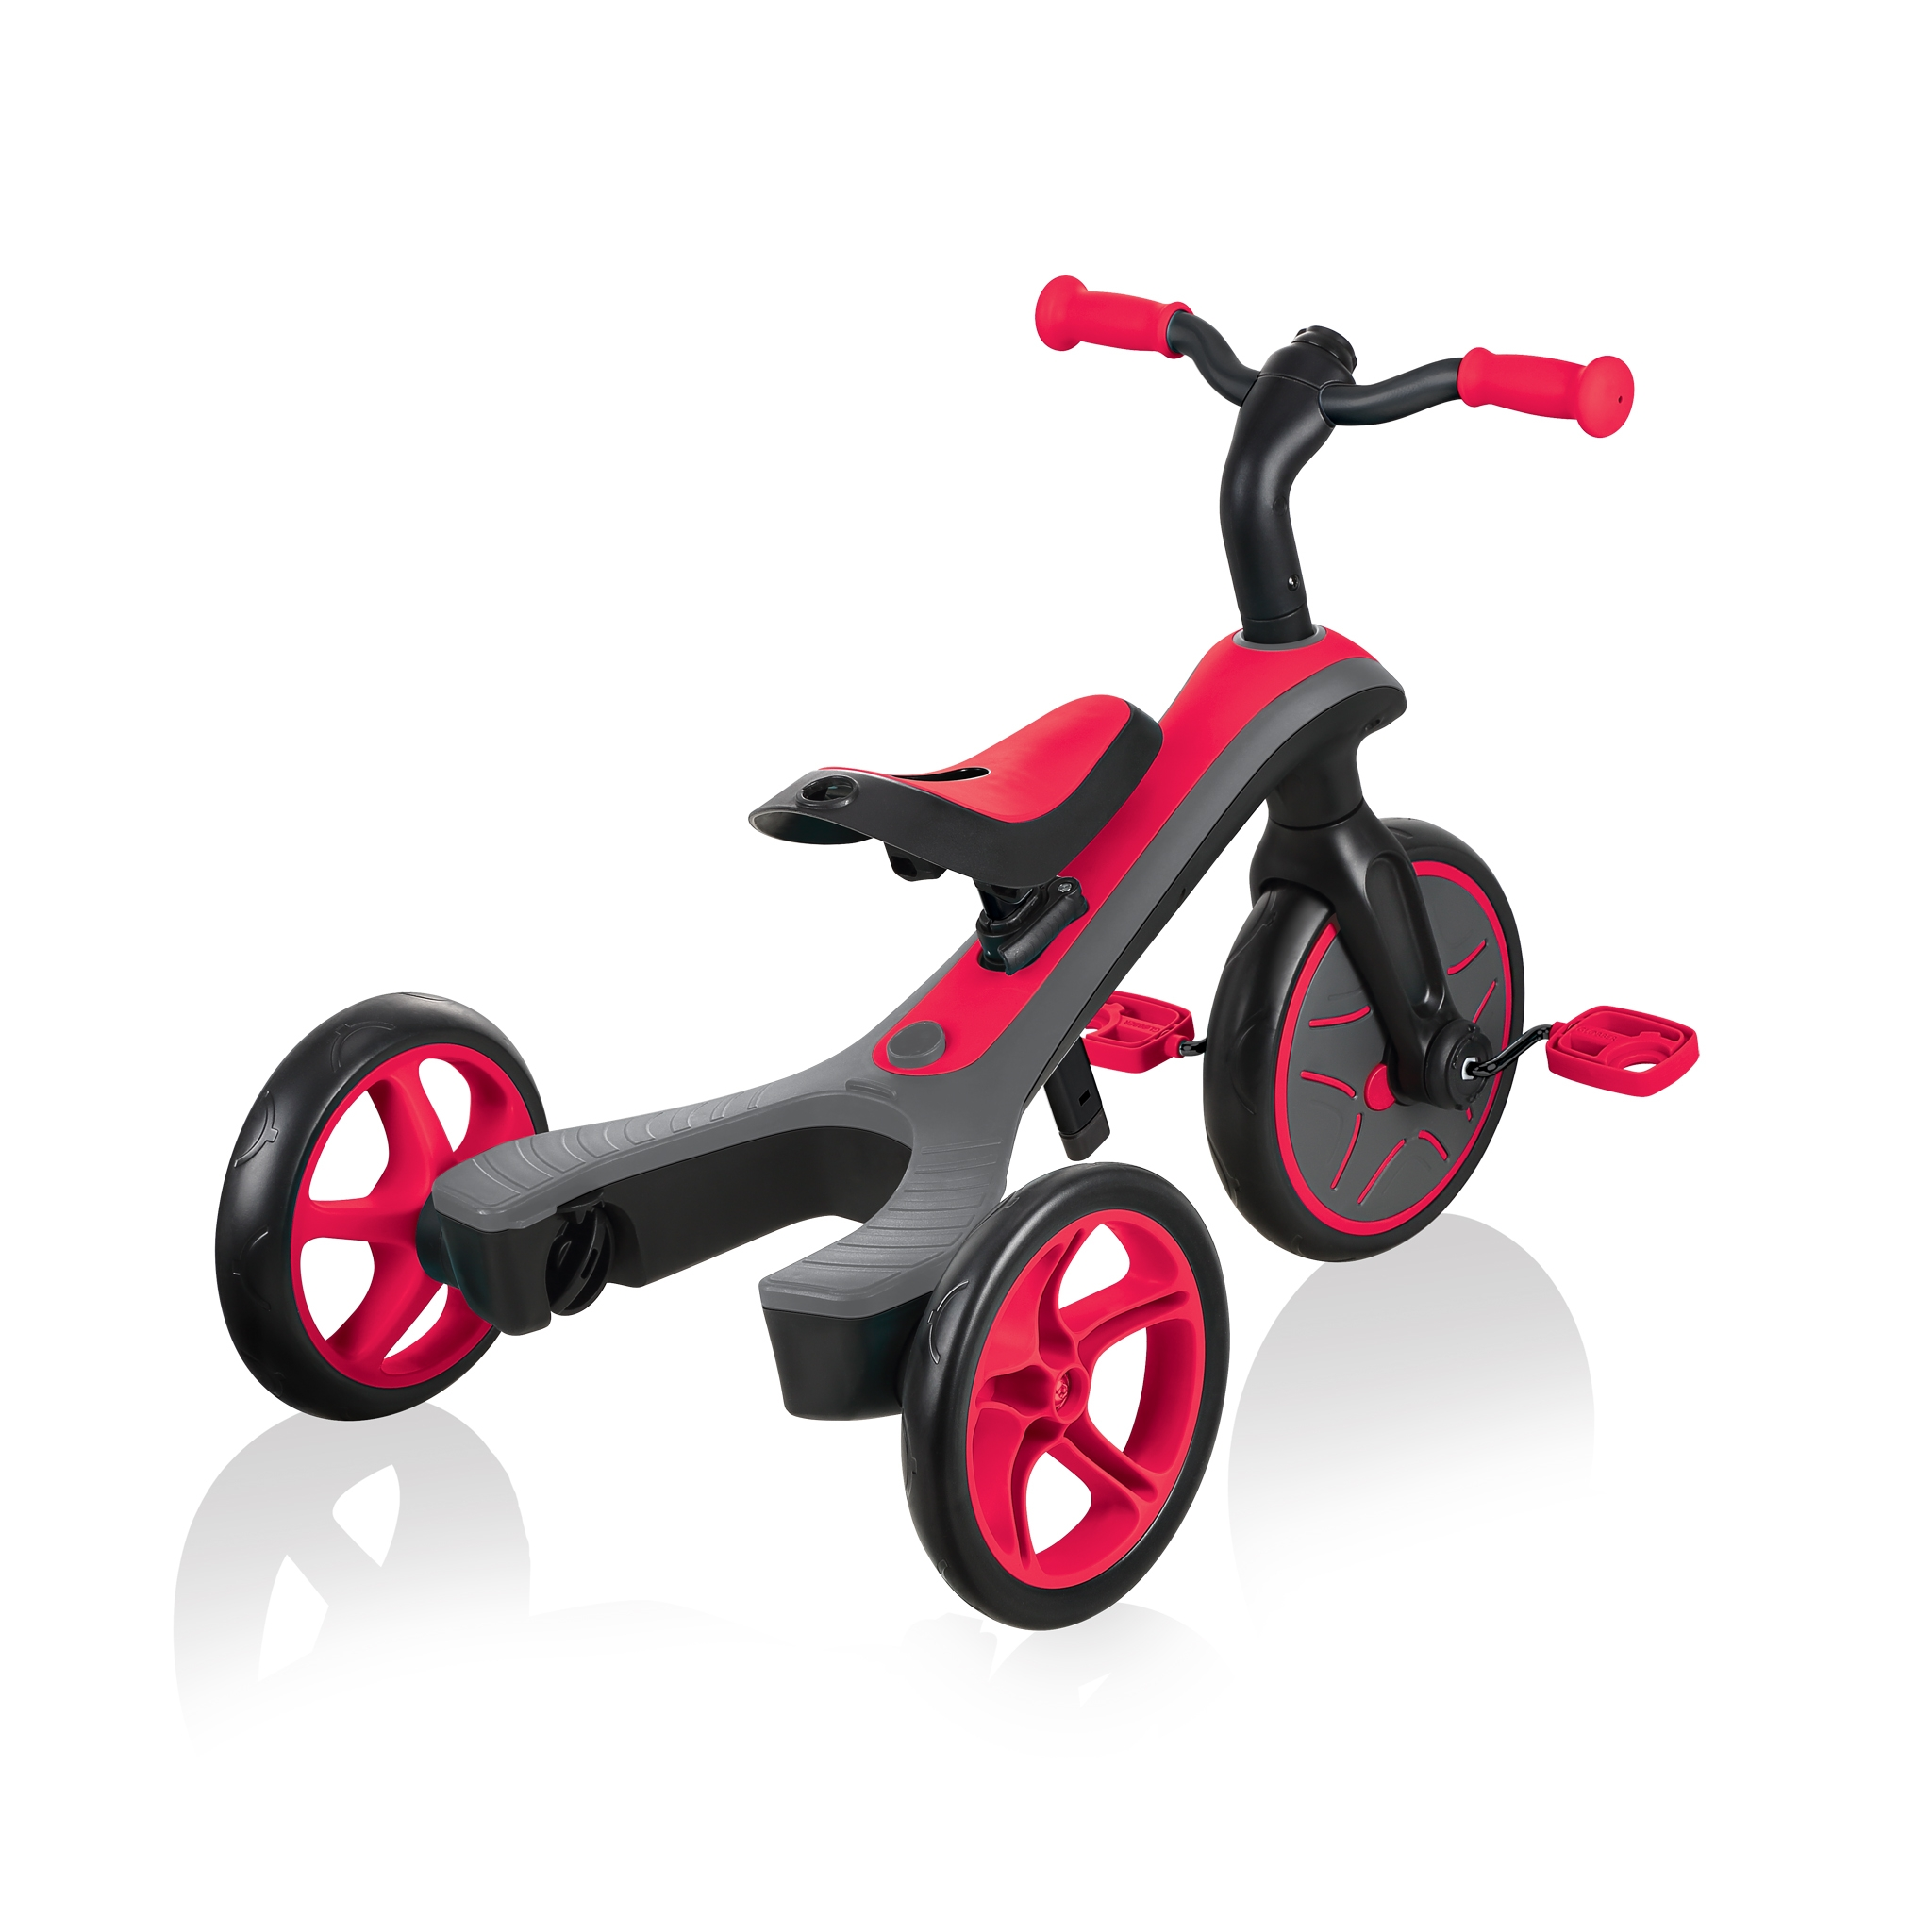 Globber-EXPLORER-TRIKE-2in1-all-in-one-training-tricycle-and-kids-balance-bike-with-patented-wheel-mechanism-transformation 3